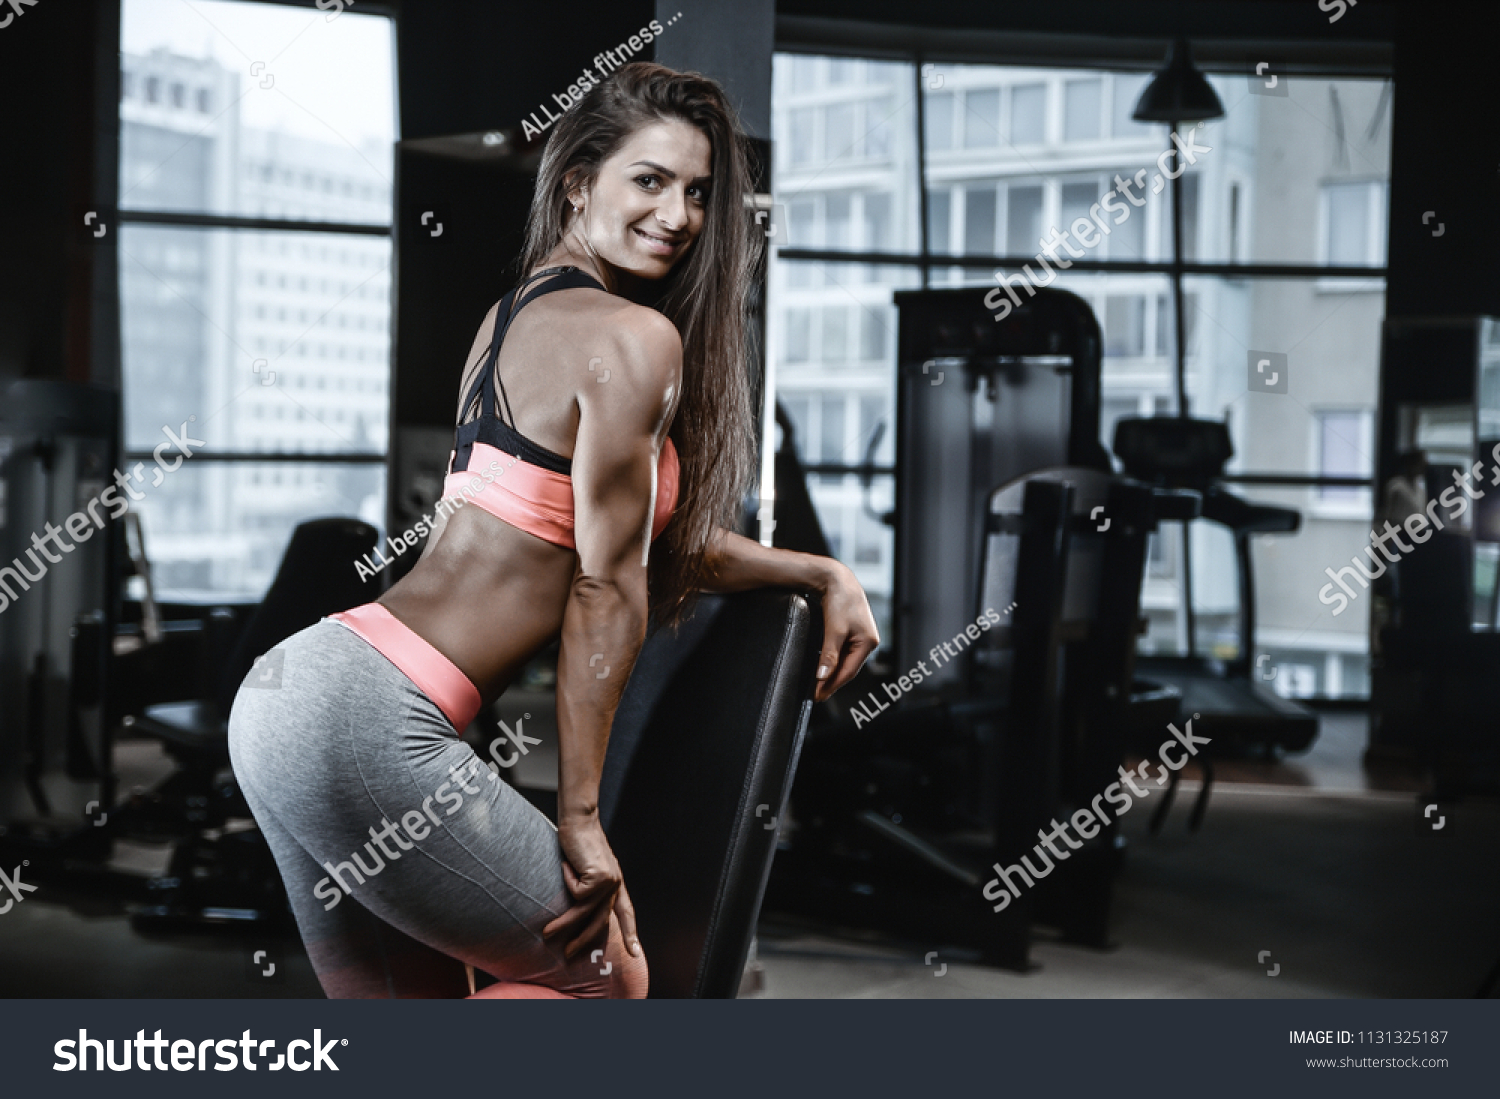 c27ce14d86779 Beautiful strong sexy athletic young caucasian fitness girl with long hair workout  training in the gym